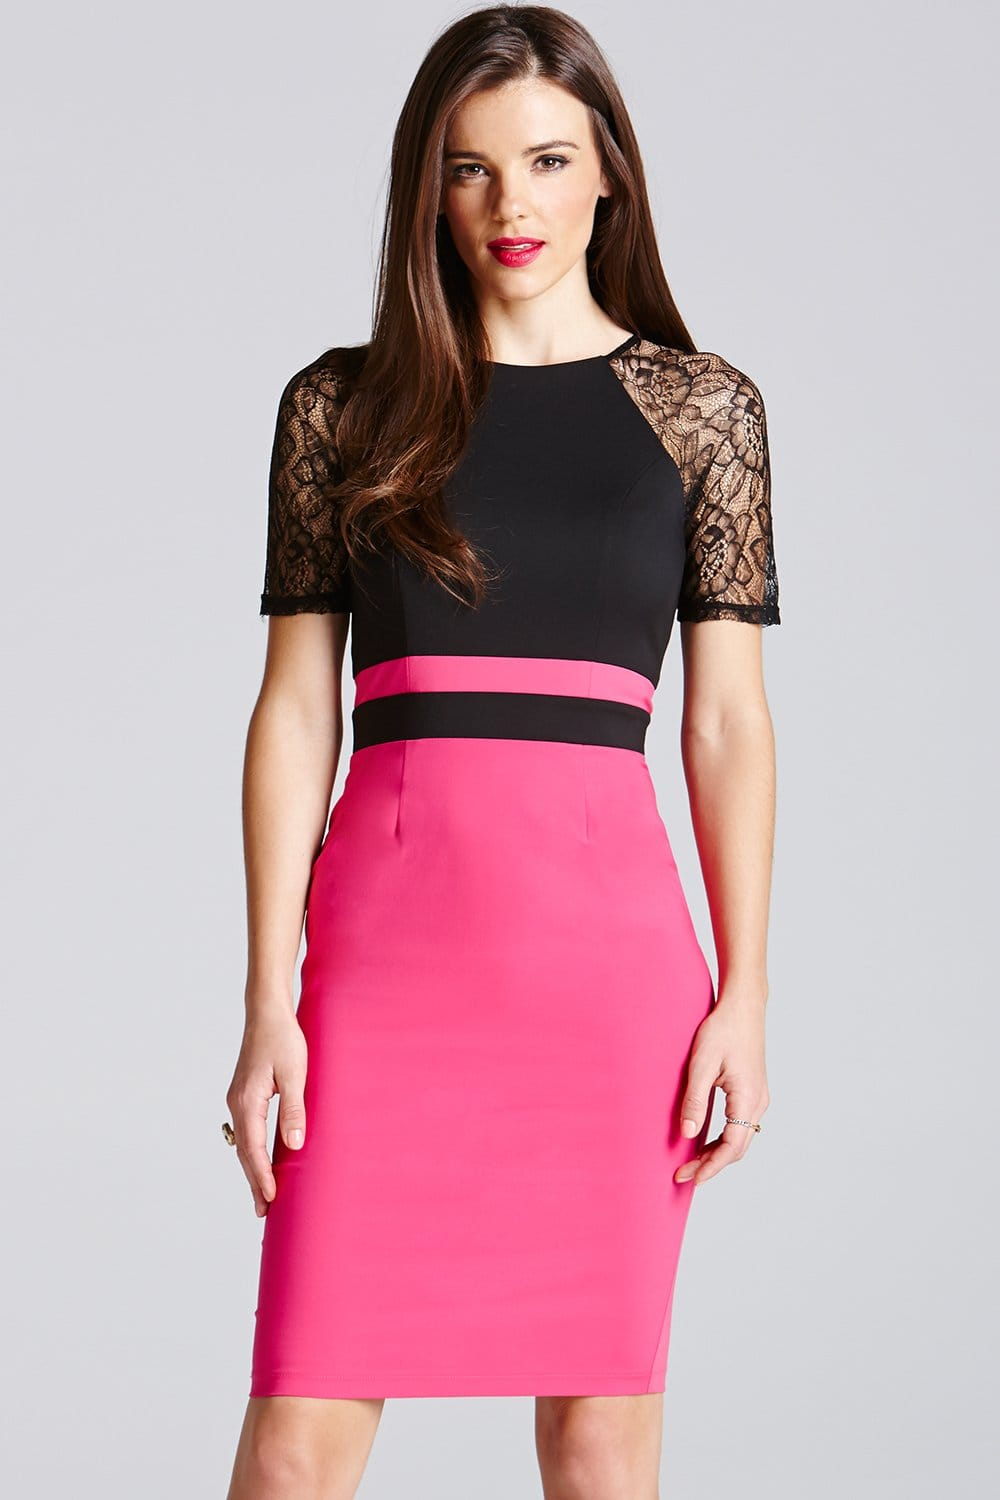 Shop pink lace dress at Neiman Marcus, where you will find free shipping on the latest in fashion from top designers.